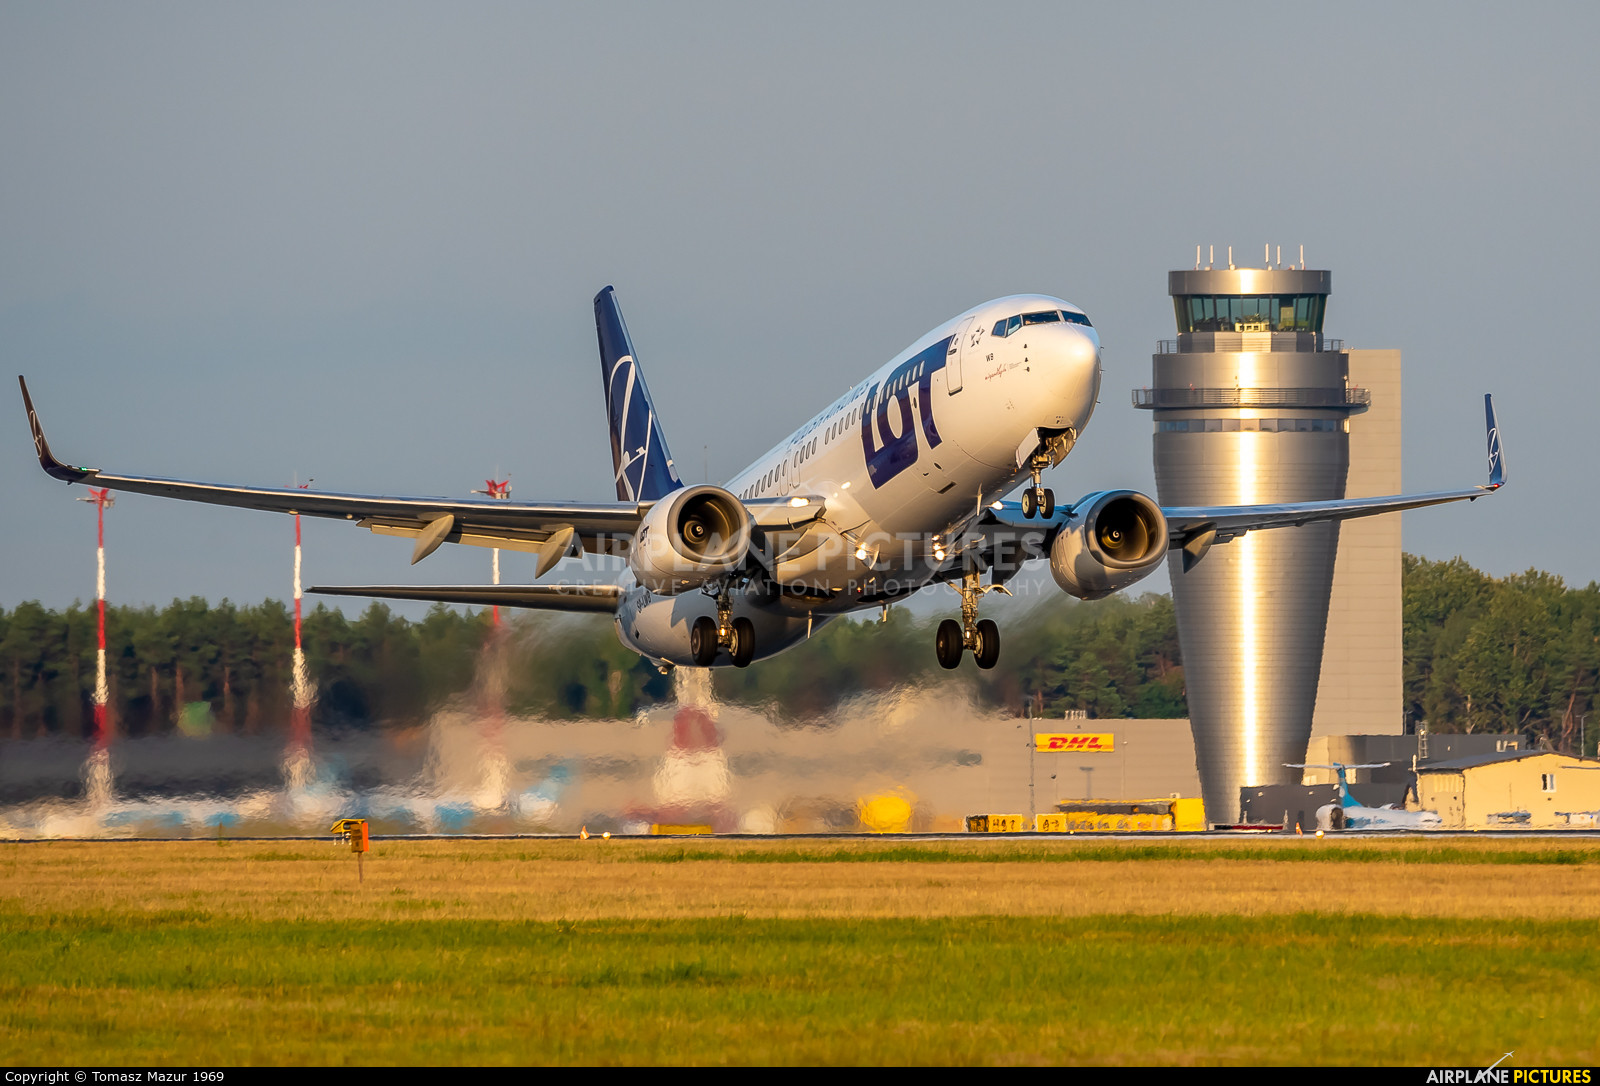 LOT - Polish Airlines SP-LWB aircraft at Katowice - Pyrzowice